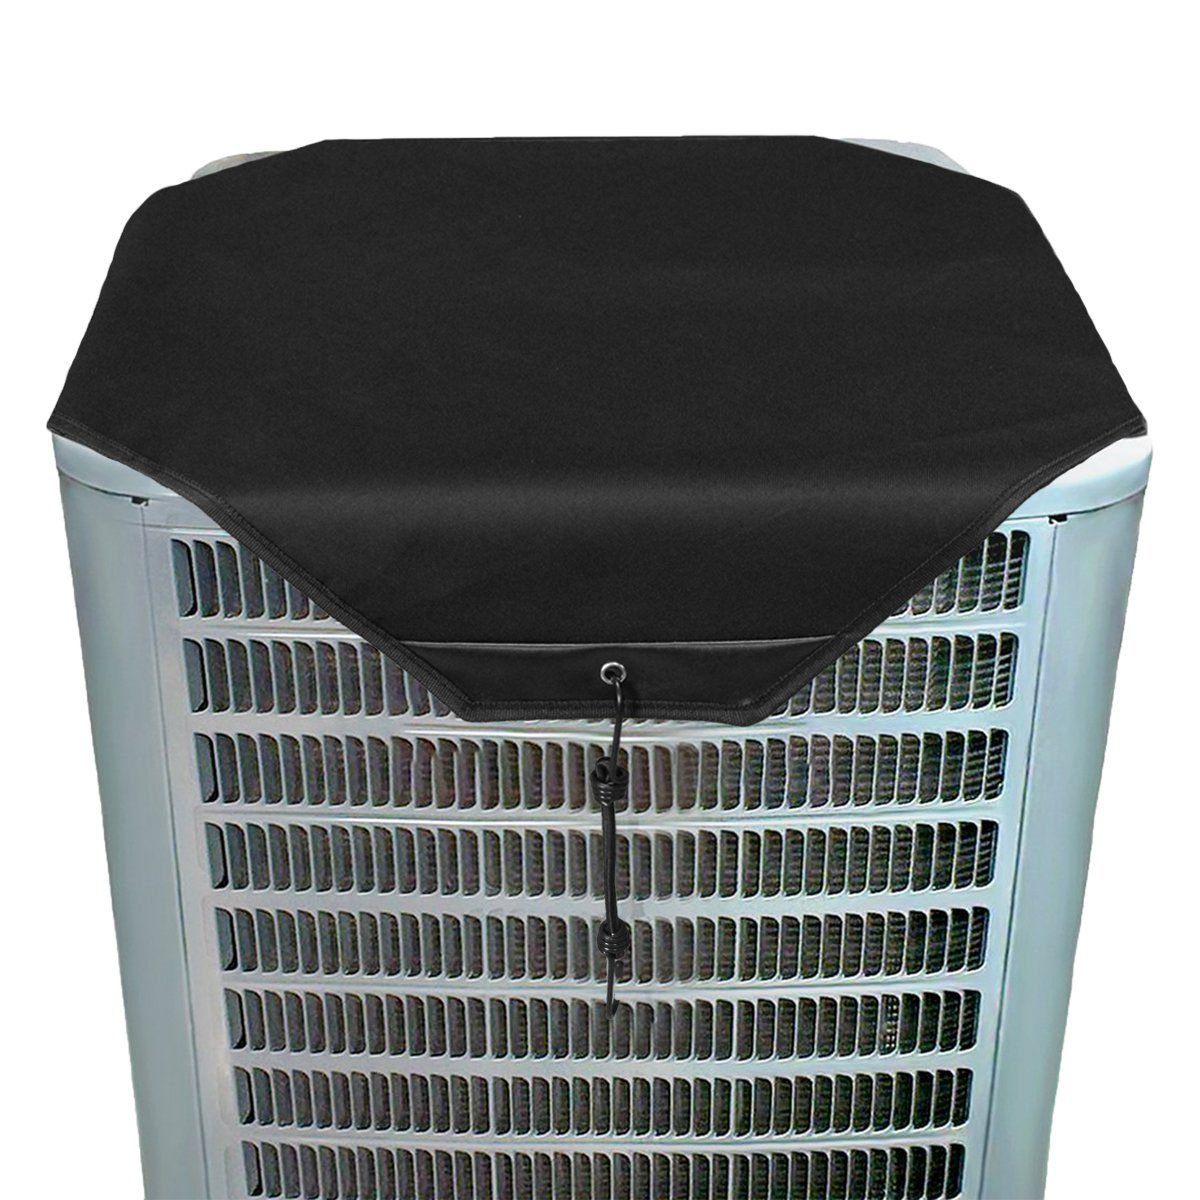 Yelyeh Ac Unit Cover Conditioner Winter Waterproof Top Air Conditioner Leaf Guard Air Conditioner Cover Black 36x36 Read Ac Unit Cover Leaf Guard Ac Units